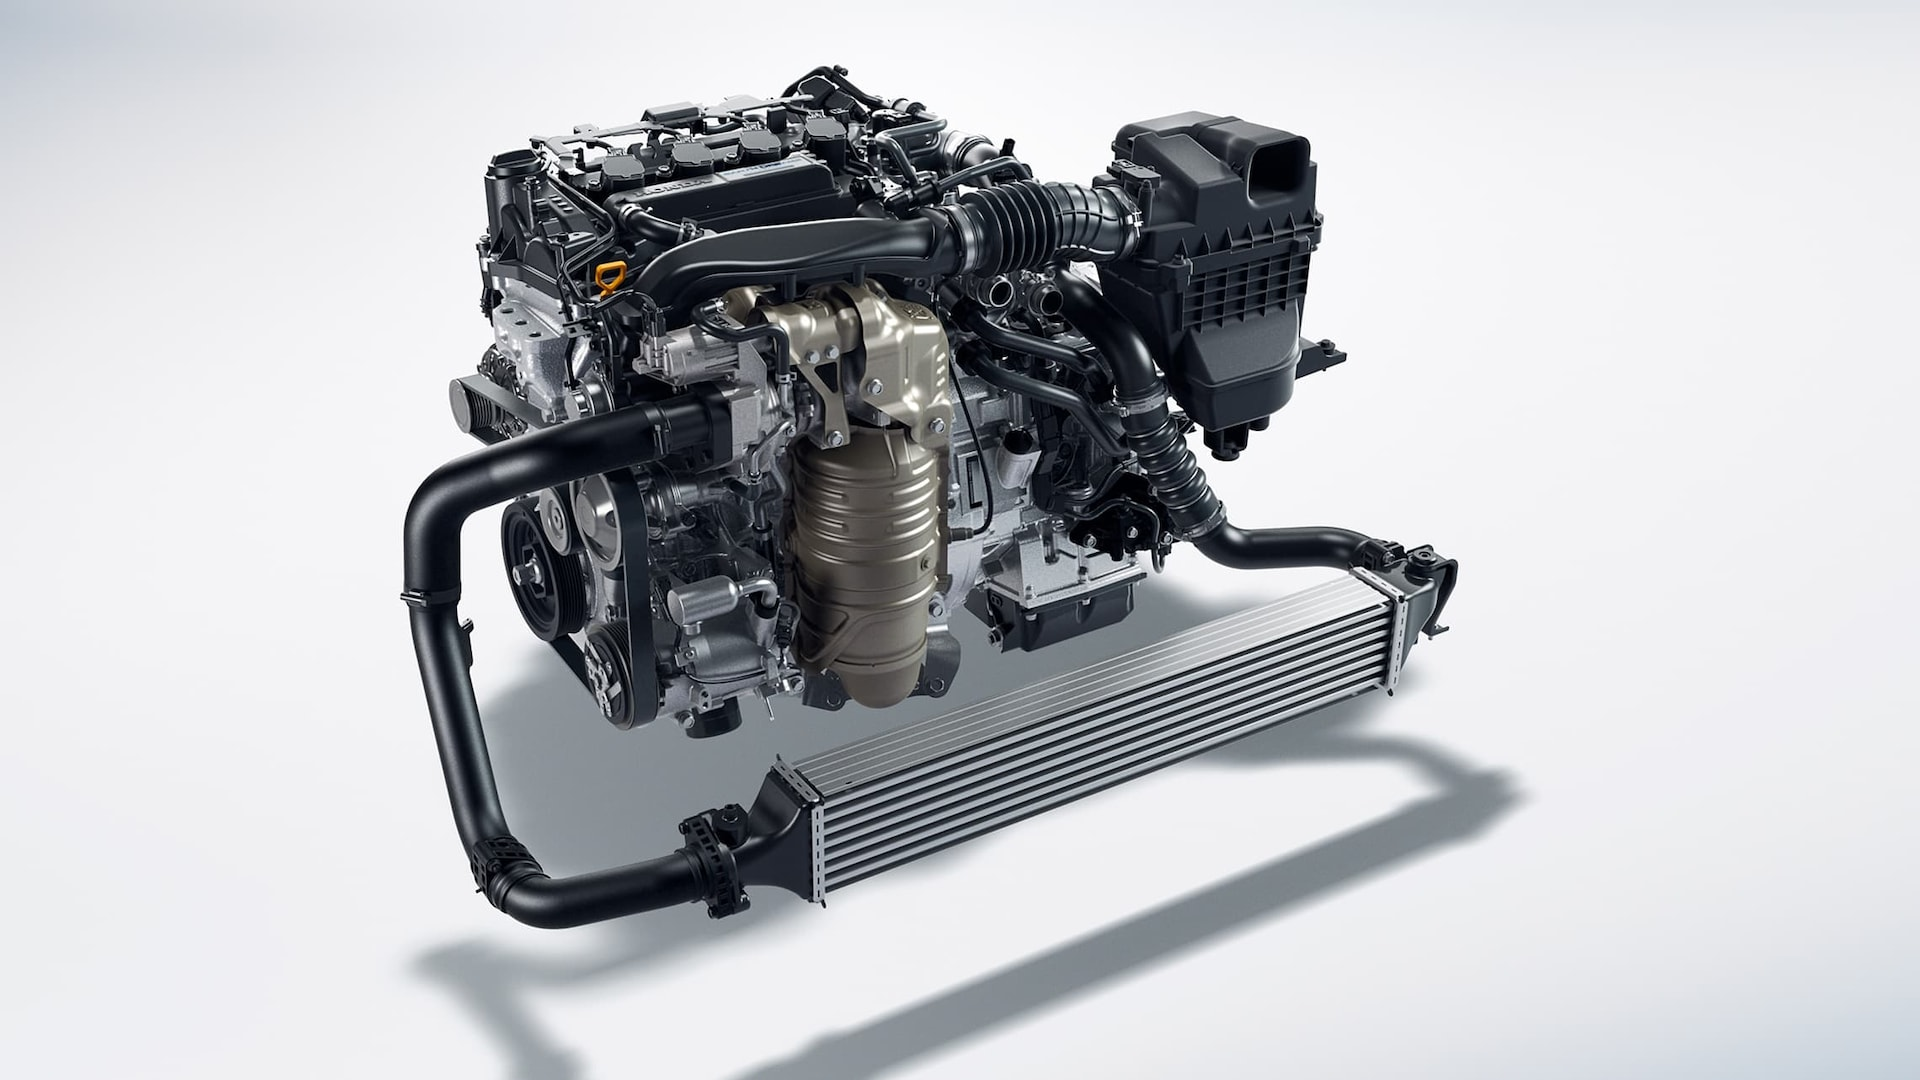 1.5-liter turbocharged and intercooled 4-cylinder engine for 2019 Honda Civic Touring Sedan.